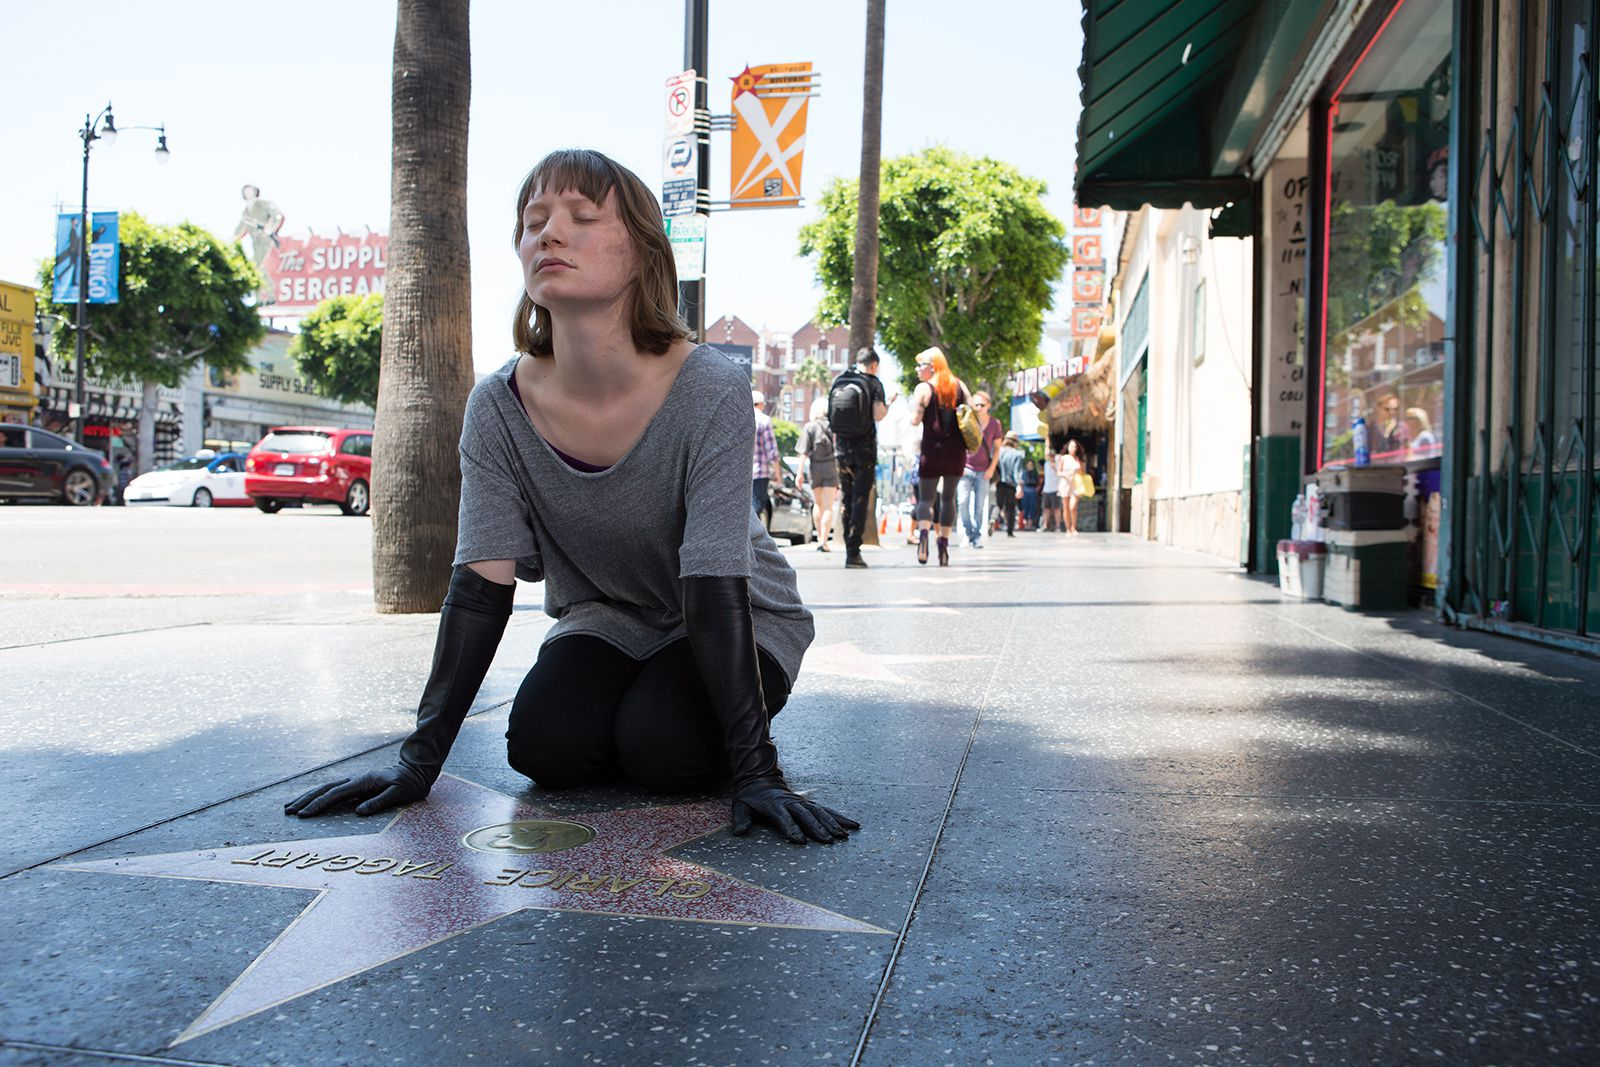 [critique] Maps To The Stars : entre réel et illusion